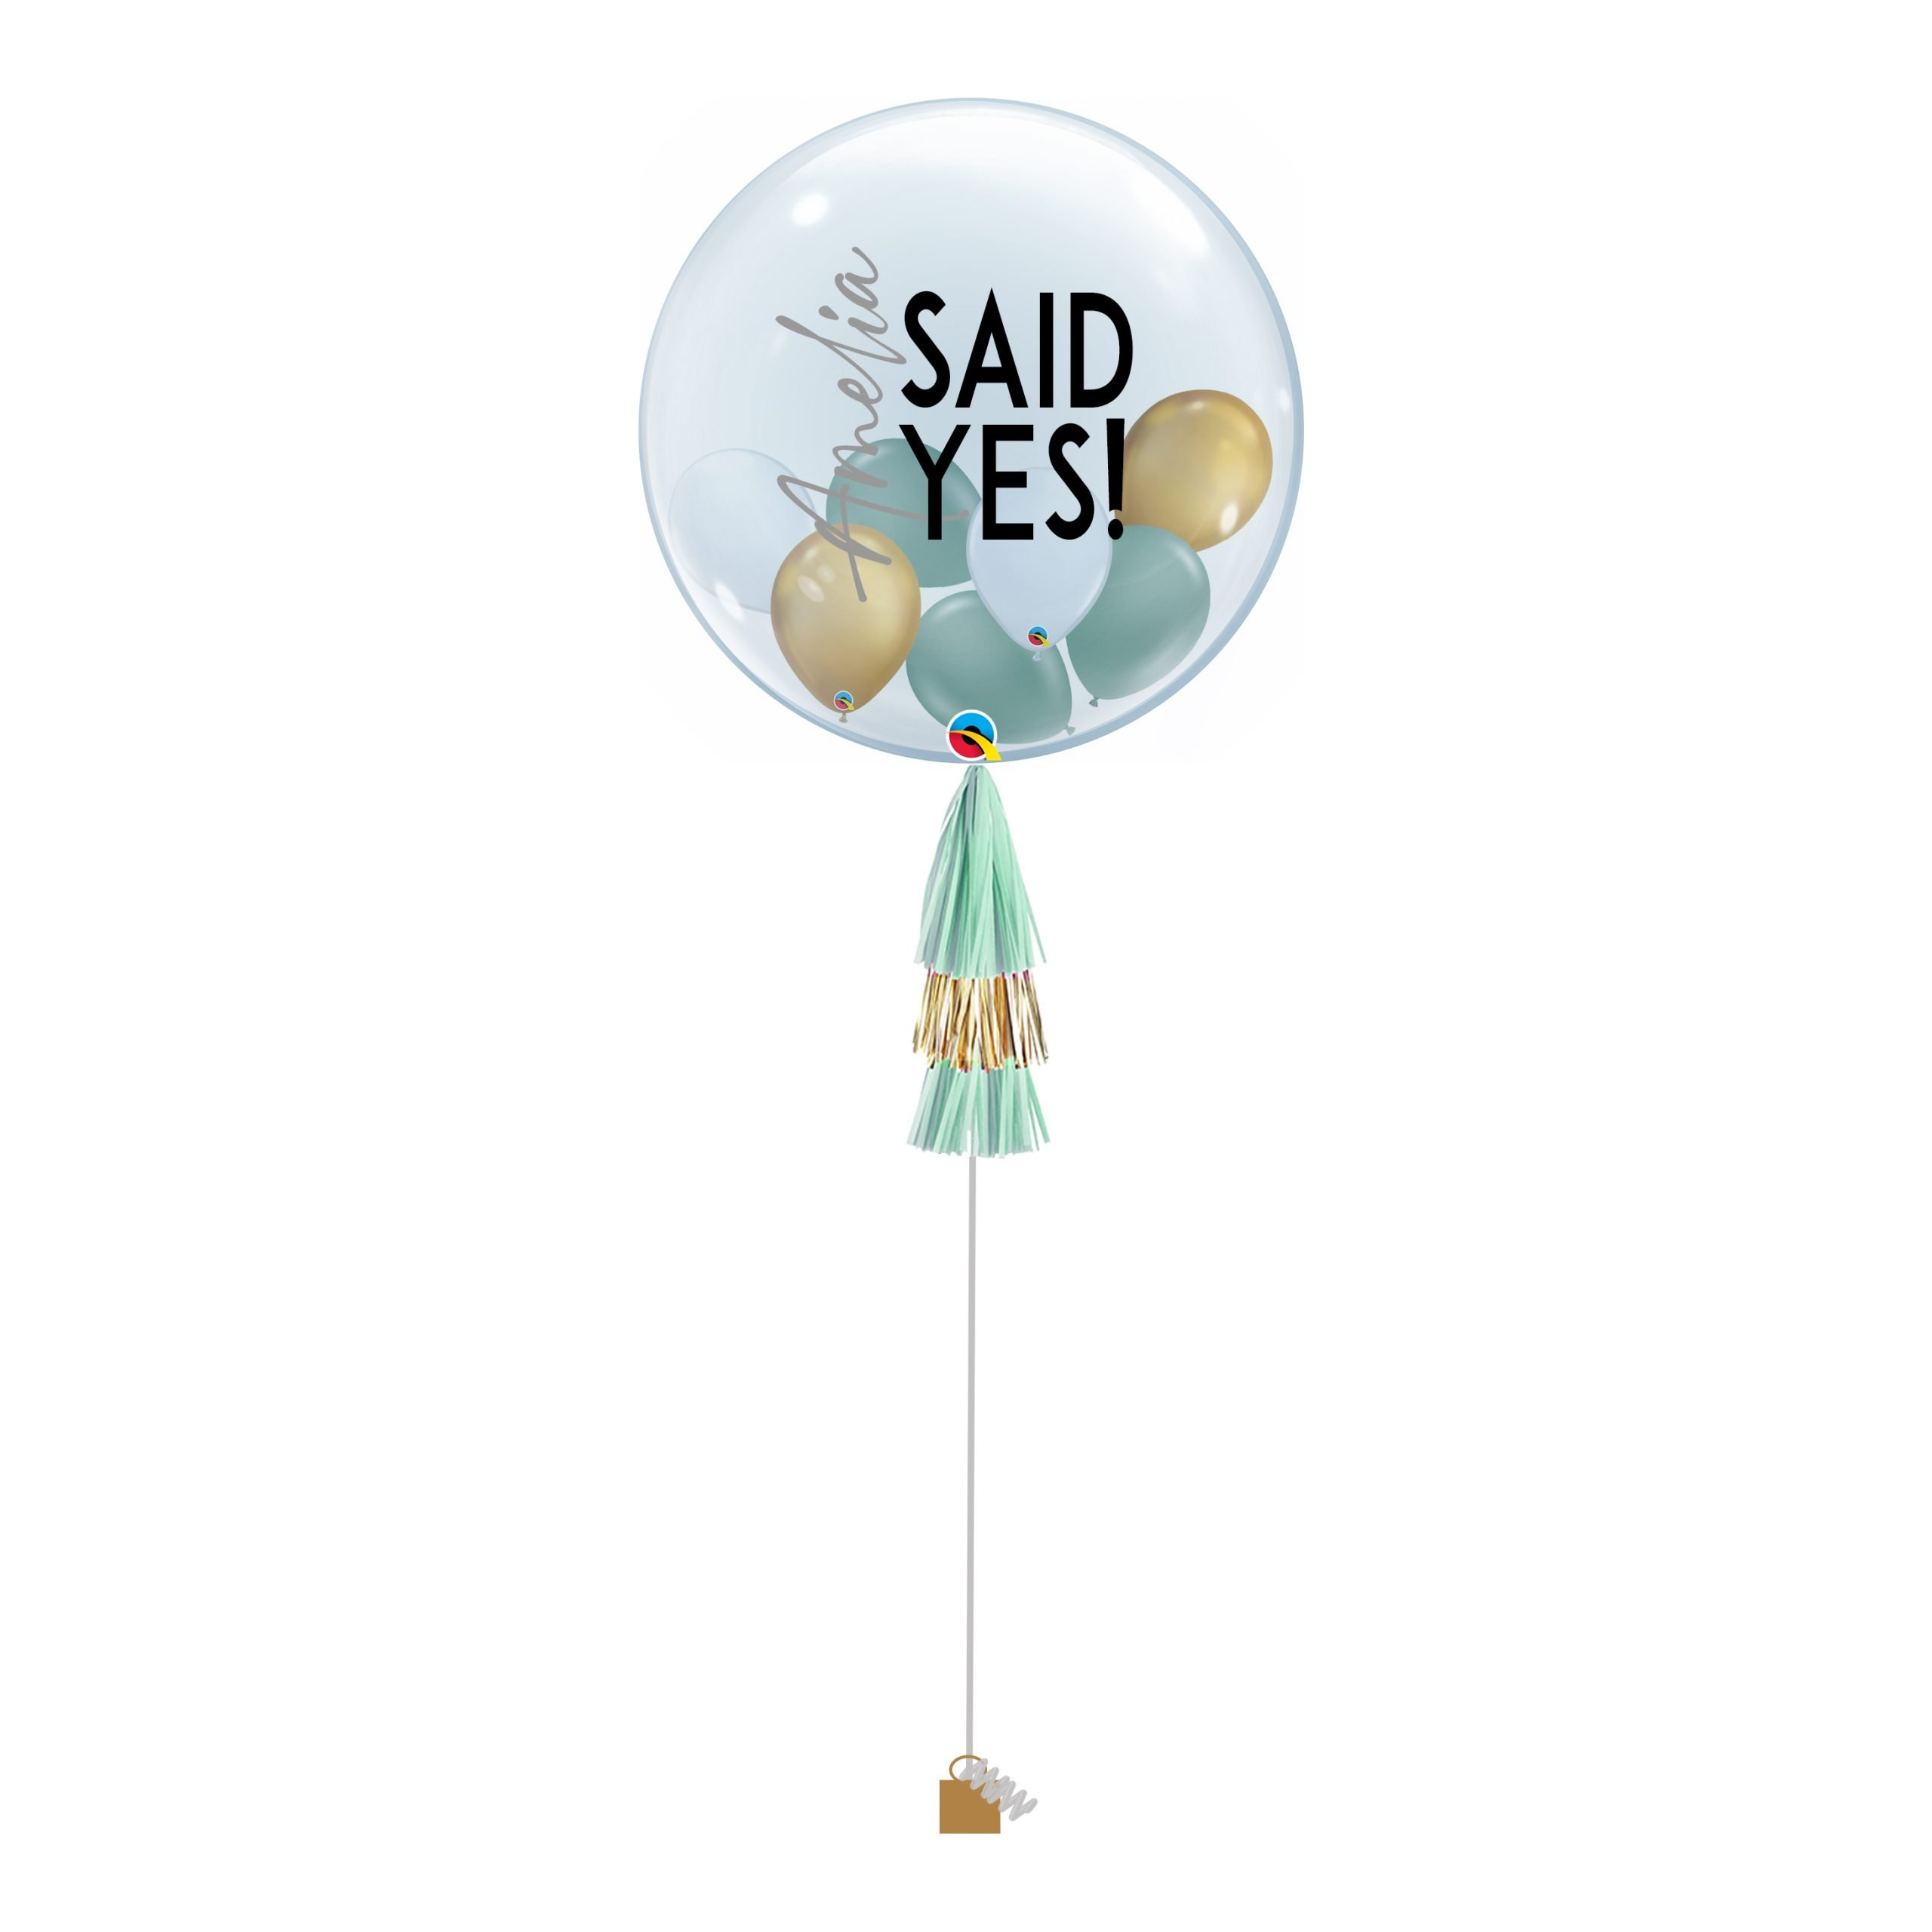 """Approx 20-22"""" Crystal Clear Bubble Balloon w/ Custom Vinyl Decal & Your Choice of Fill, Coordinating Tassel, & Simple Balloon Weight"""